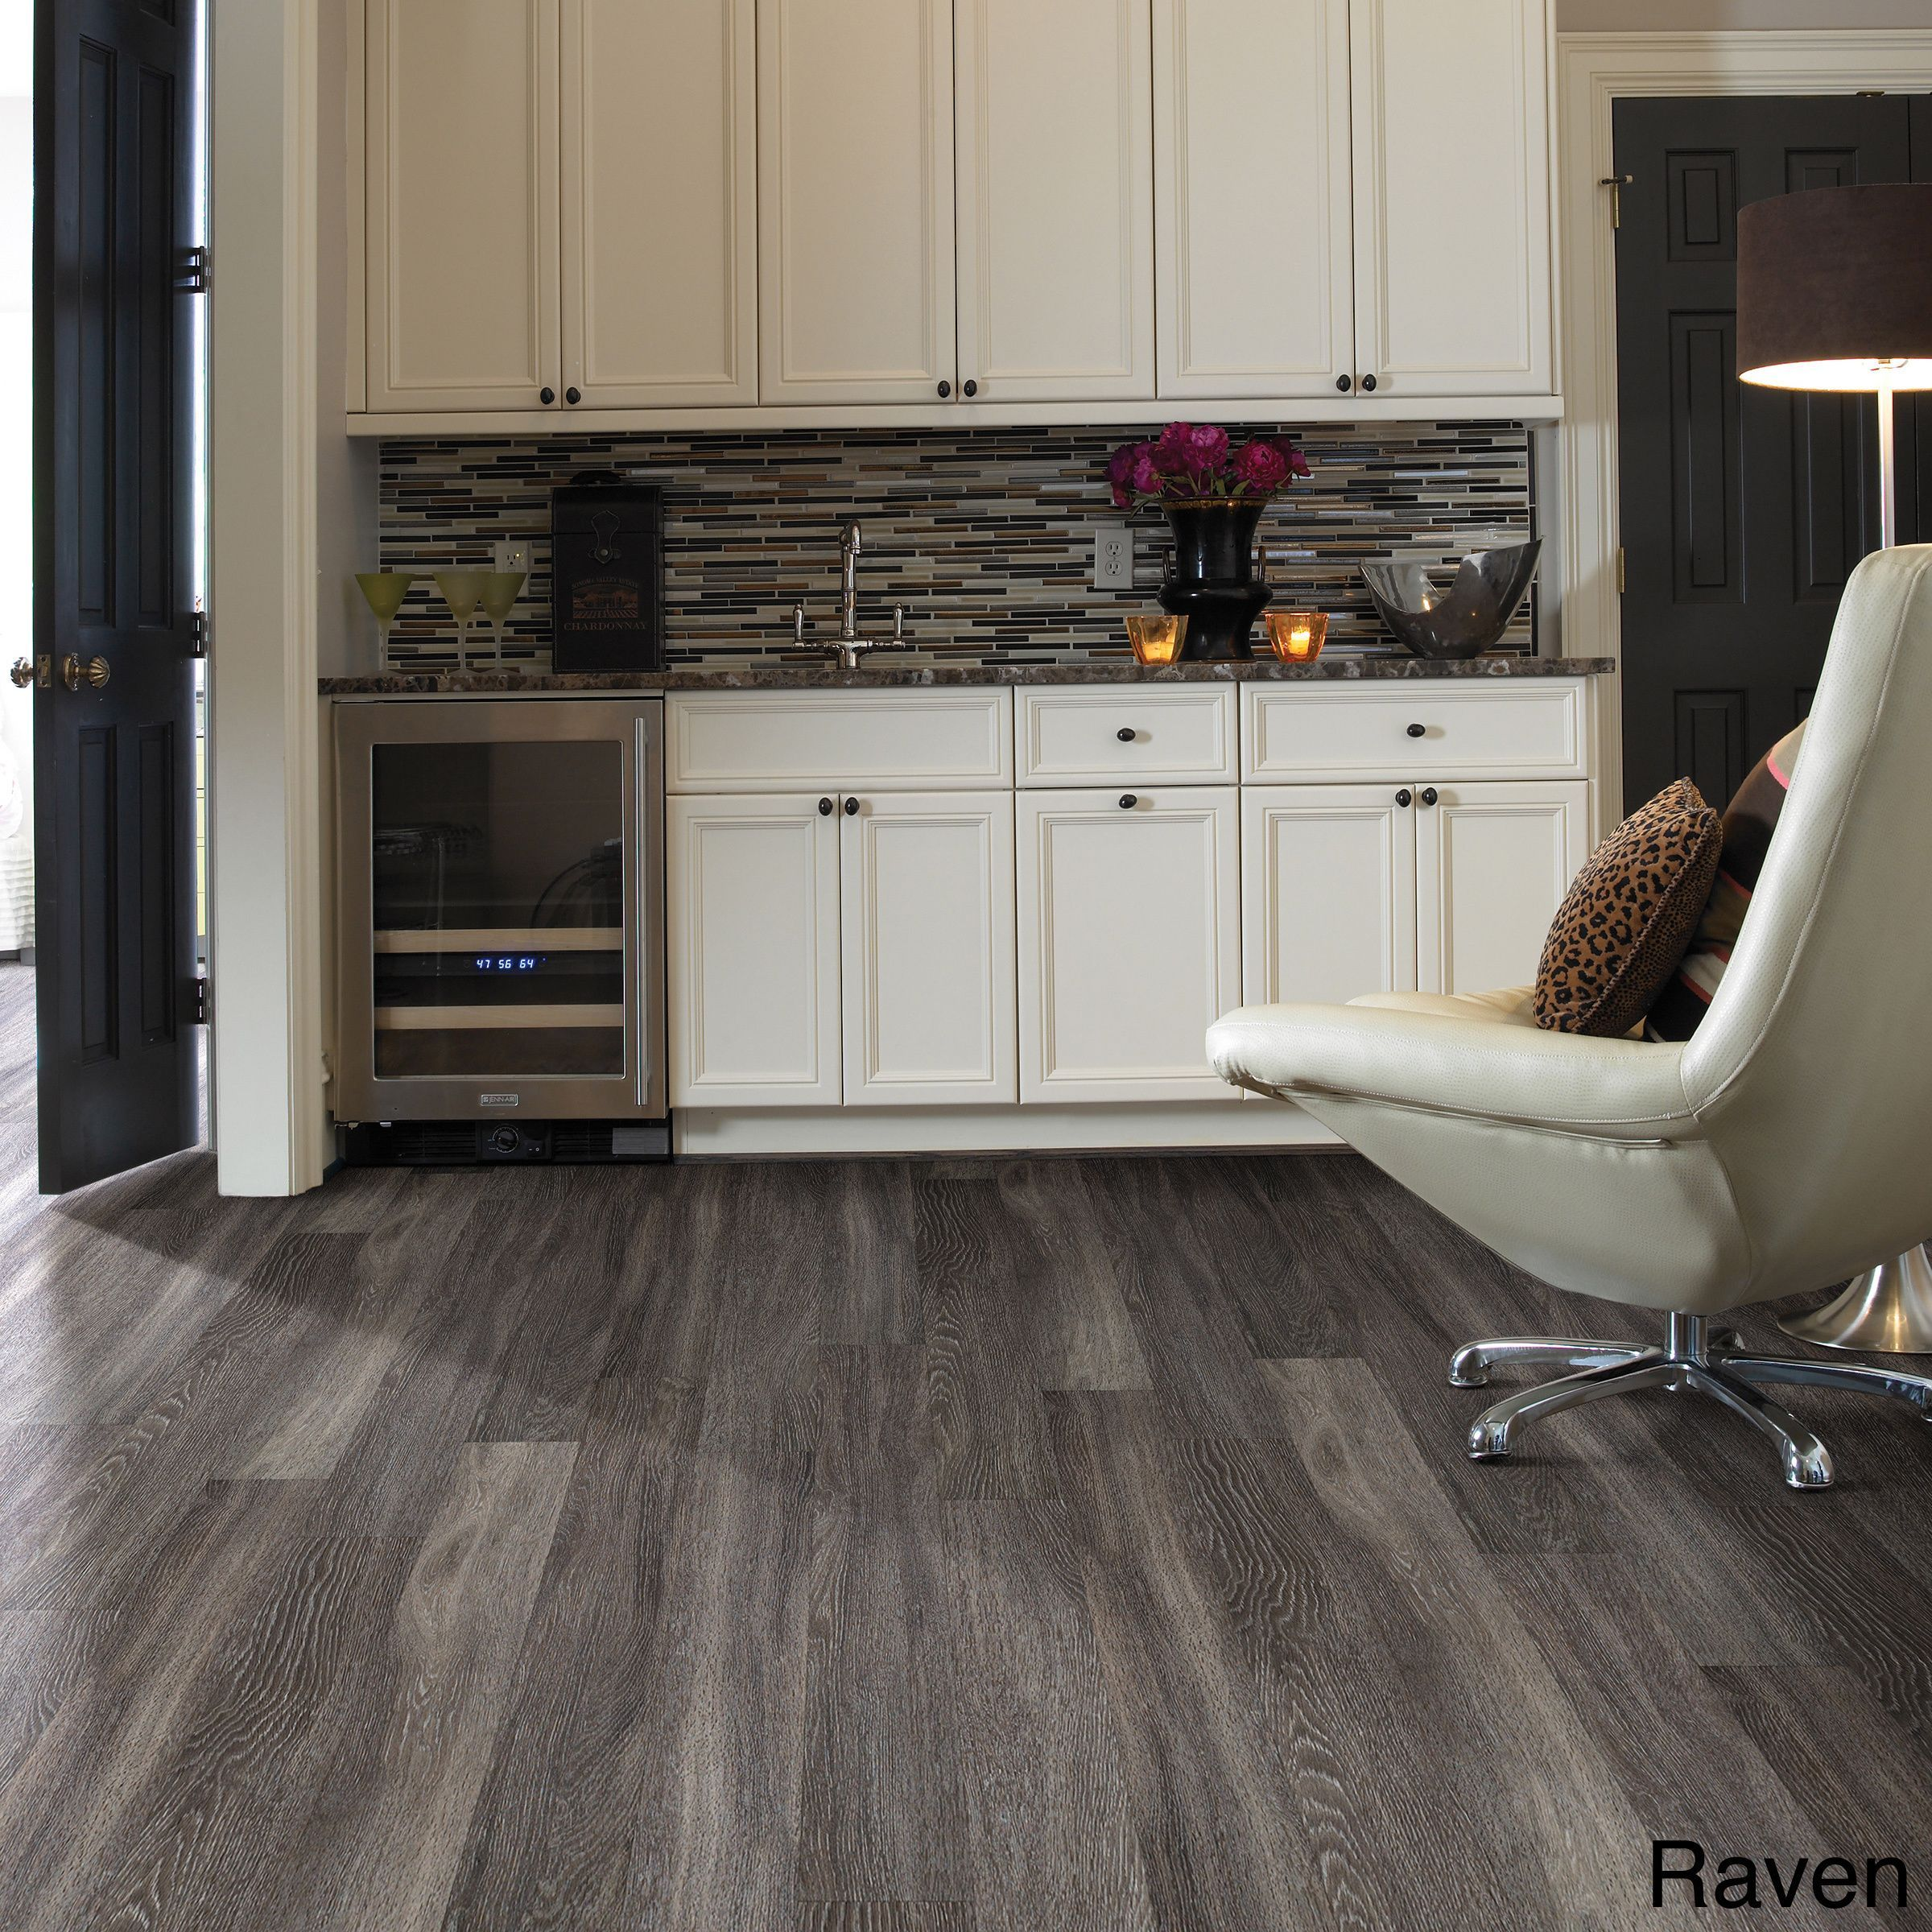 Vintage pewter oak pergo outlast laminate flooring pergo 174 flooring - Give Your Home A Refreshing New Look With This Harwich Oak Vinyl Plank Flooring In